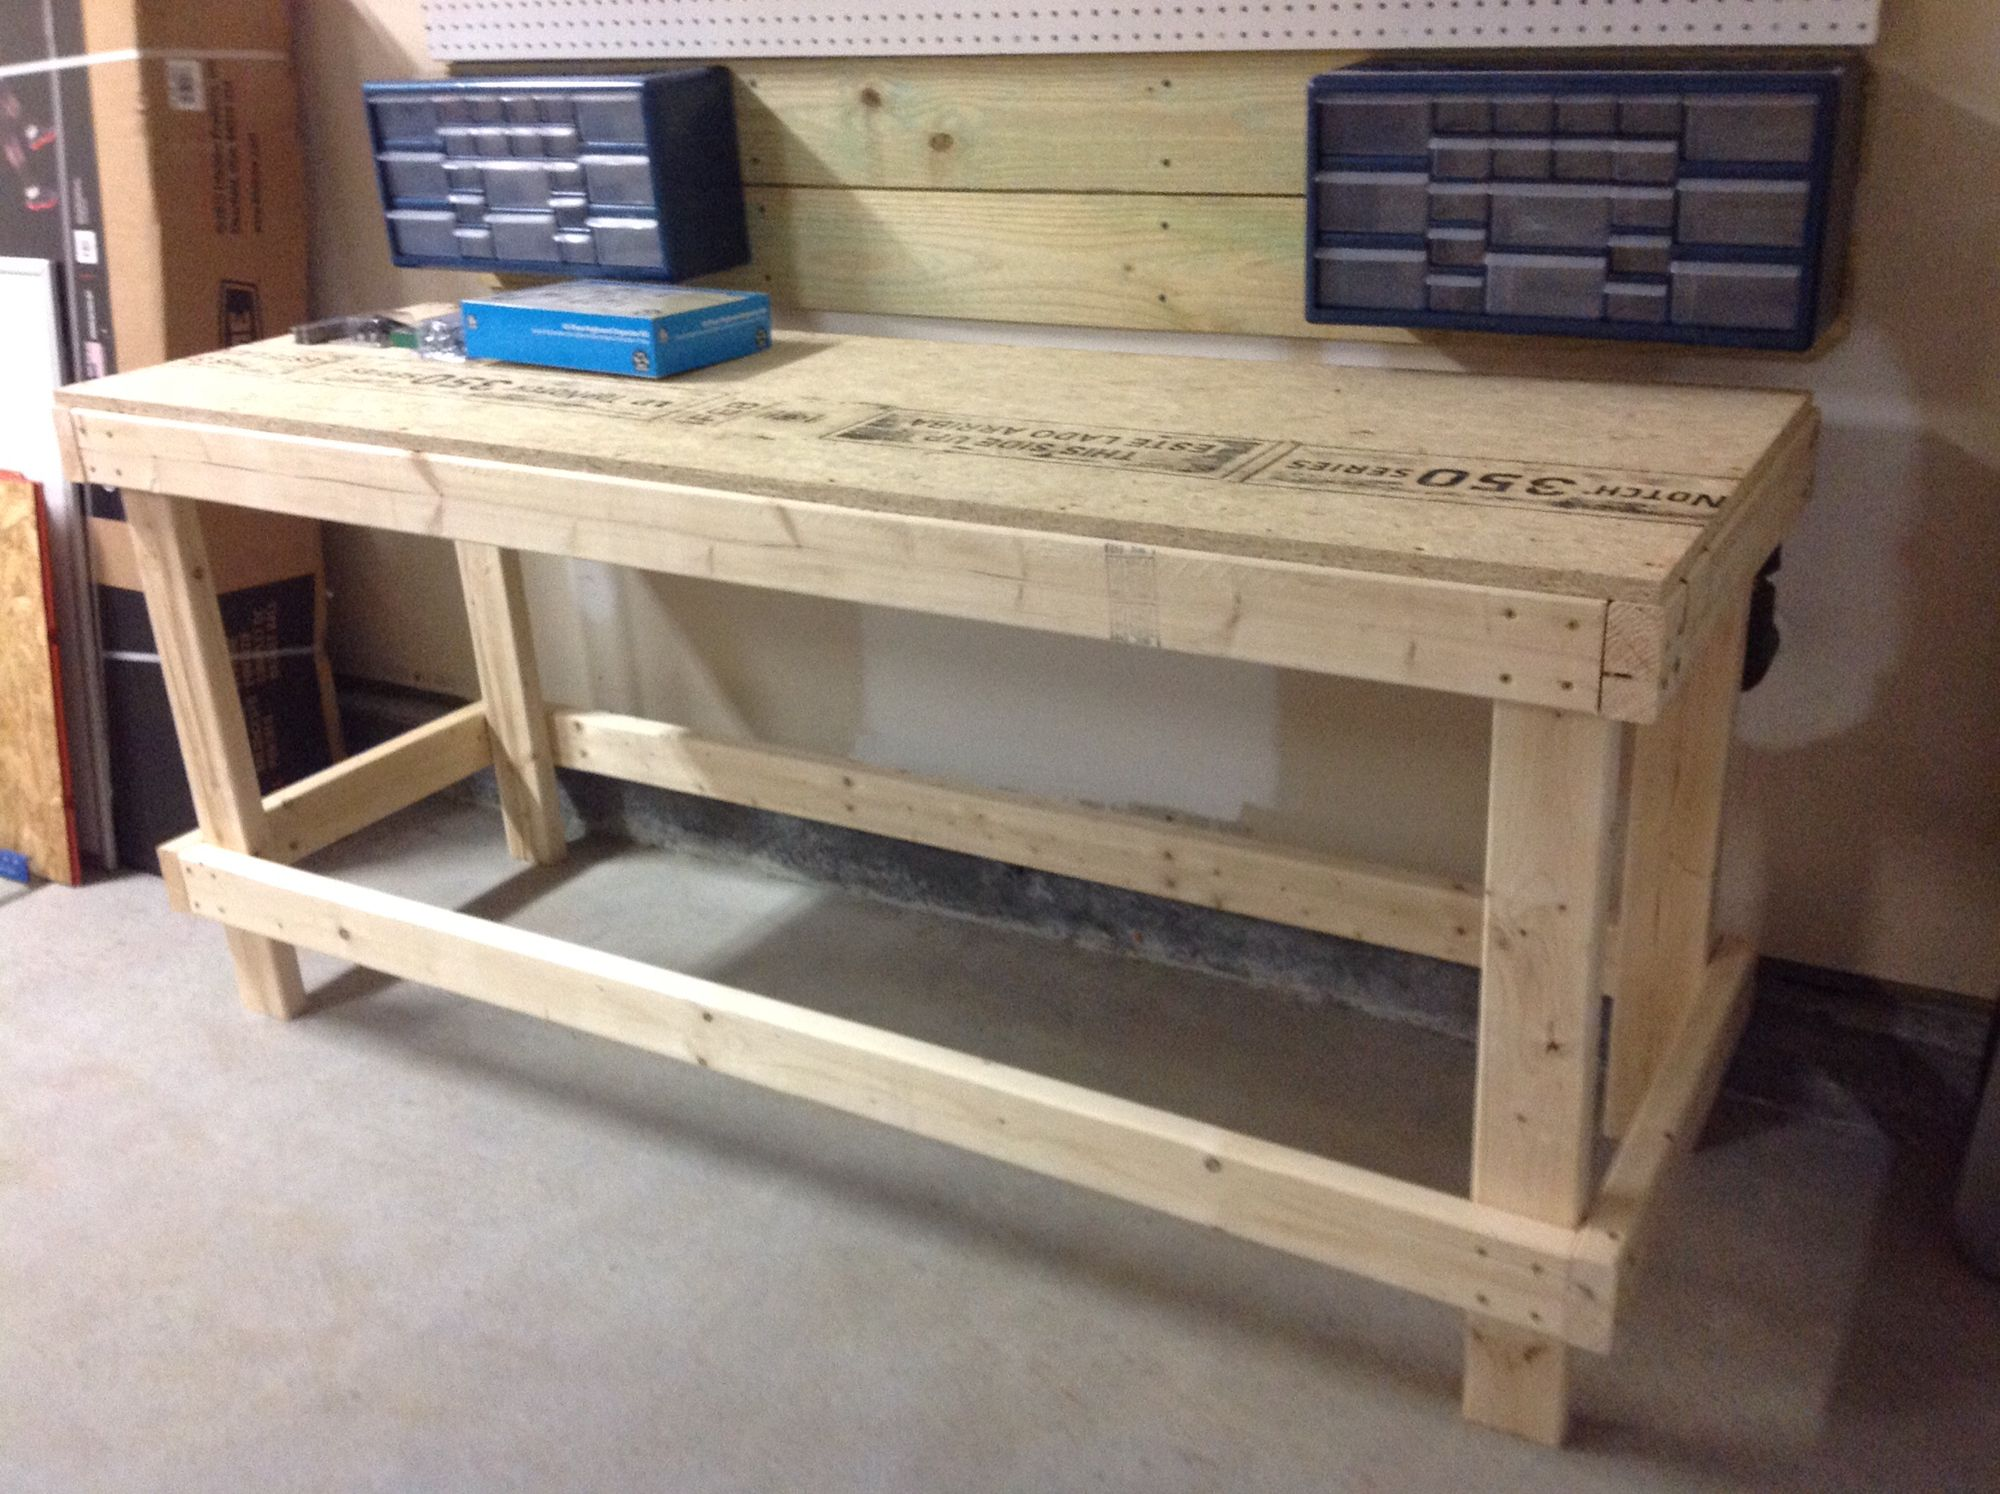 2 x 6 workbench for less then 30 i used 2x4s for the frame and left over 34 osb subfloor from my attic project for the top - Workbench Frame